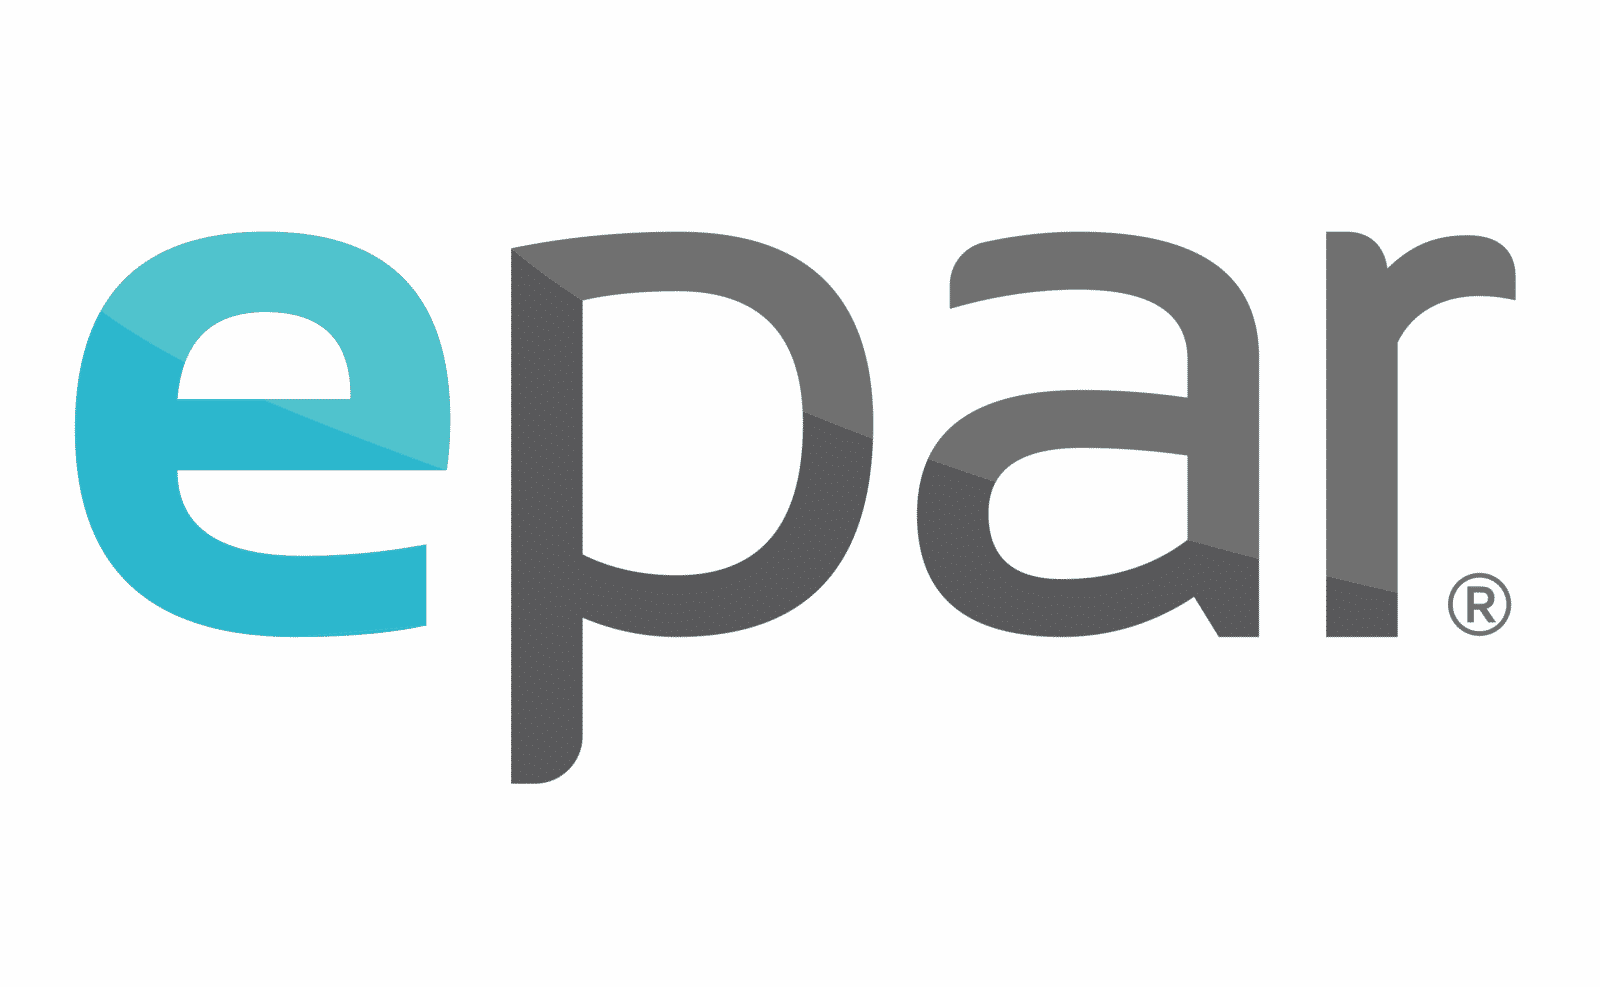 EPA_epar_group_logo_FA_NOTAG-large